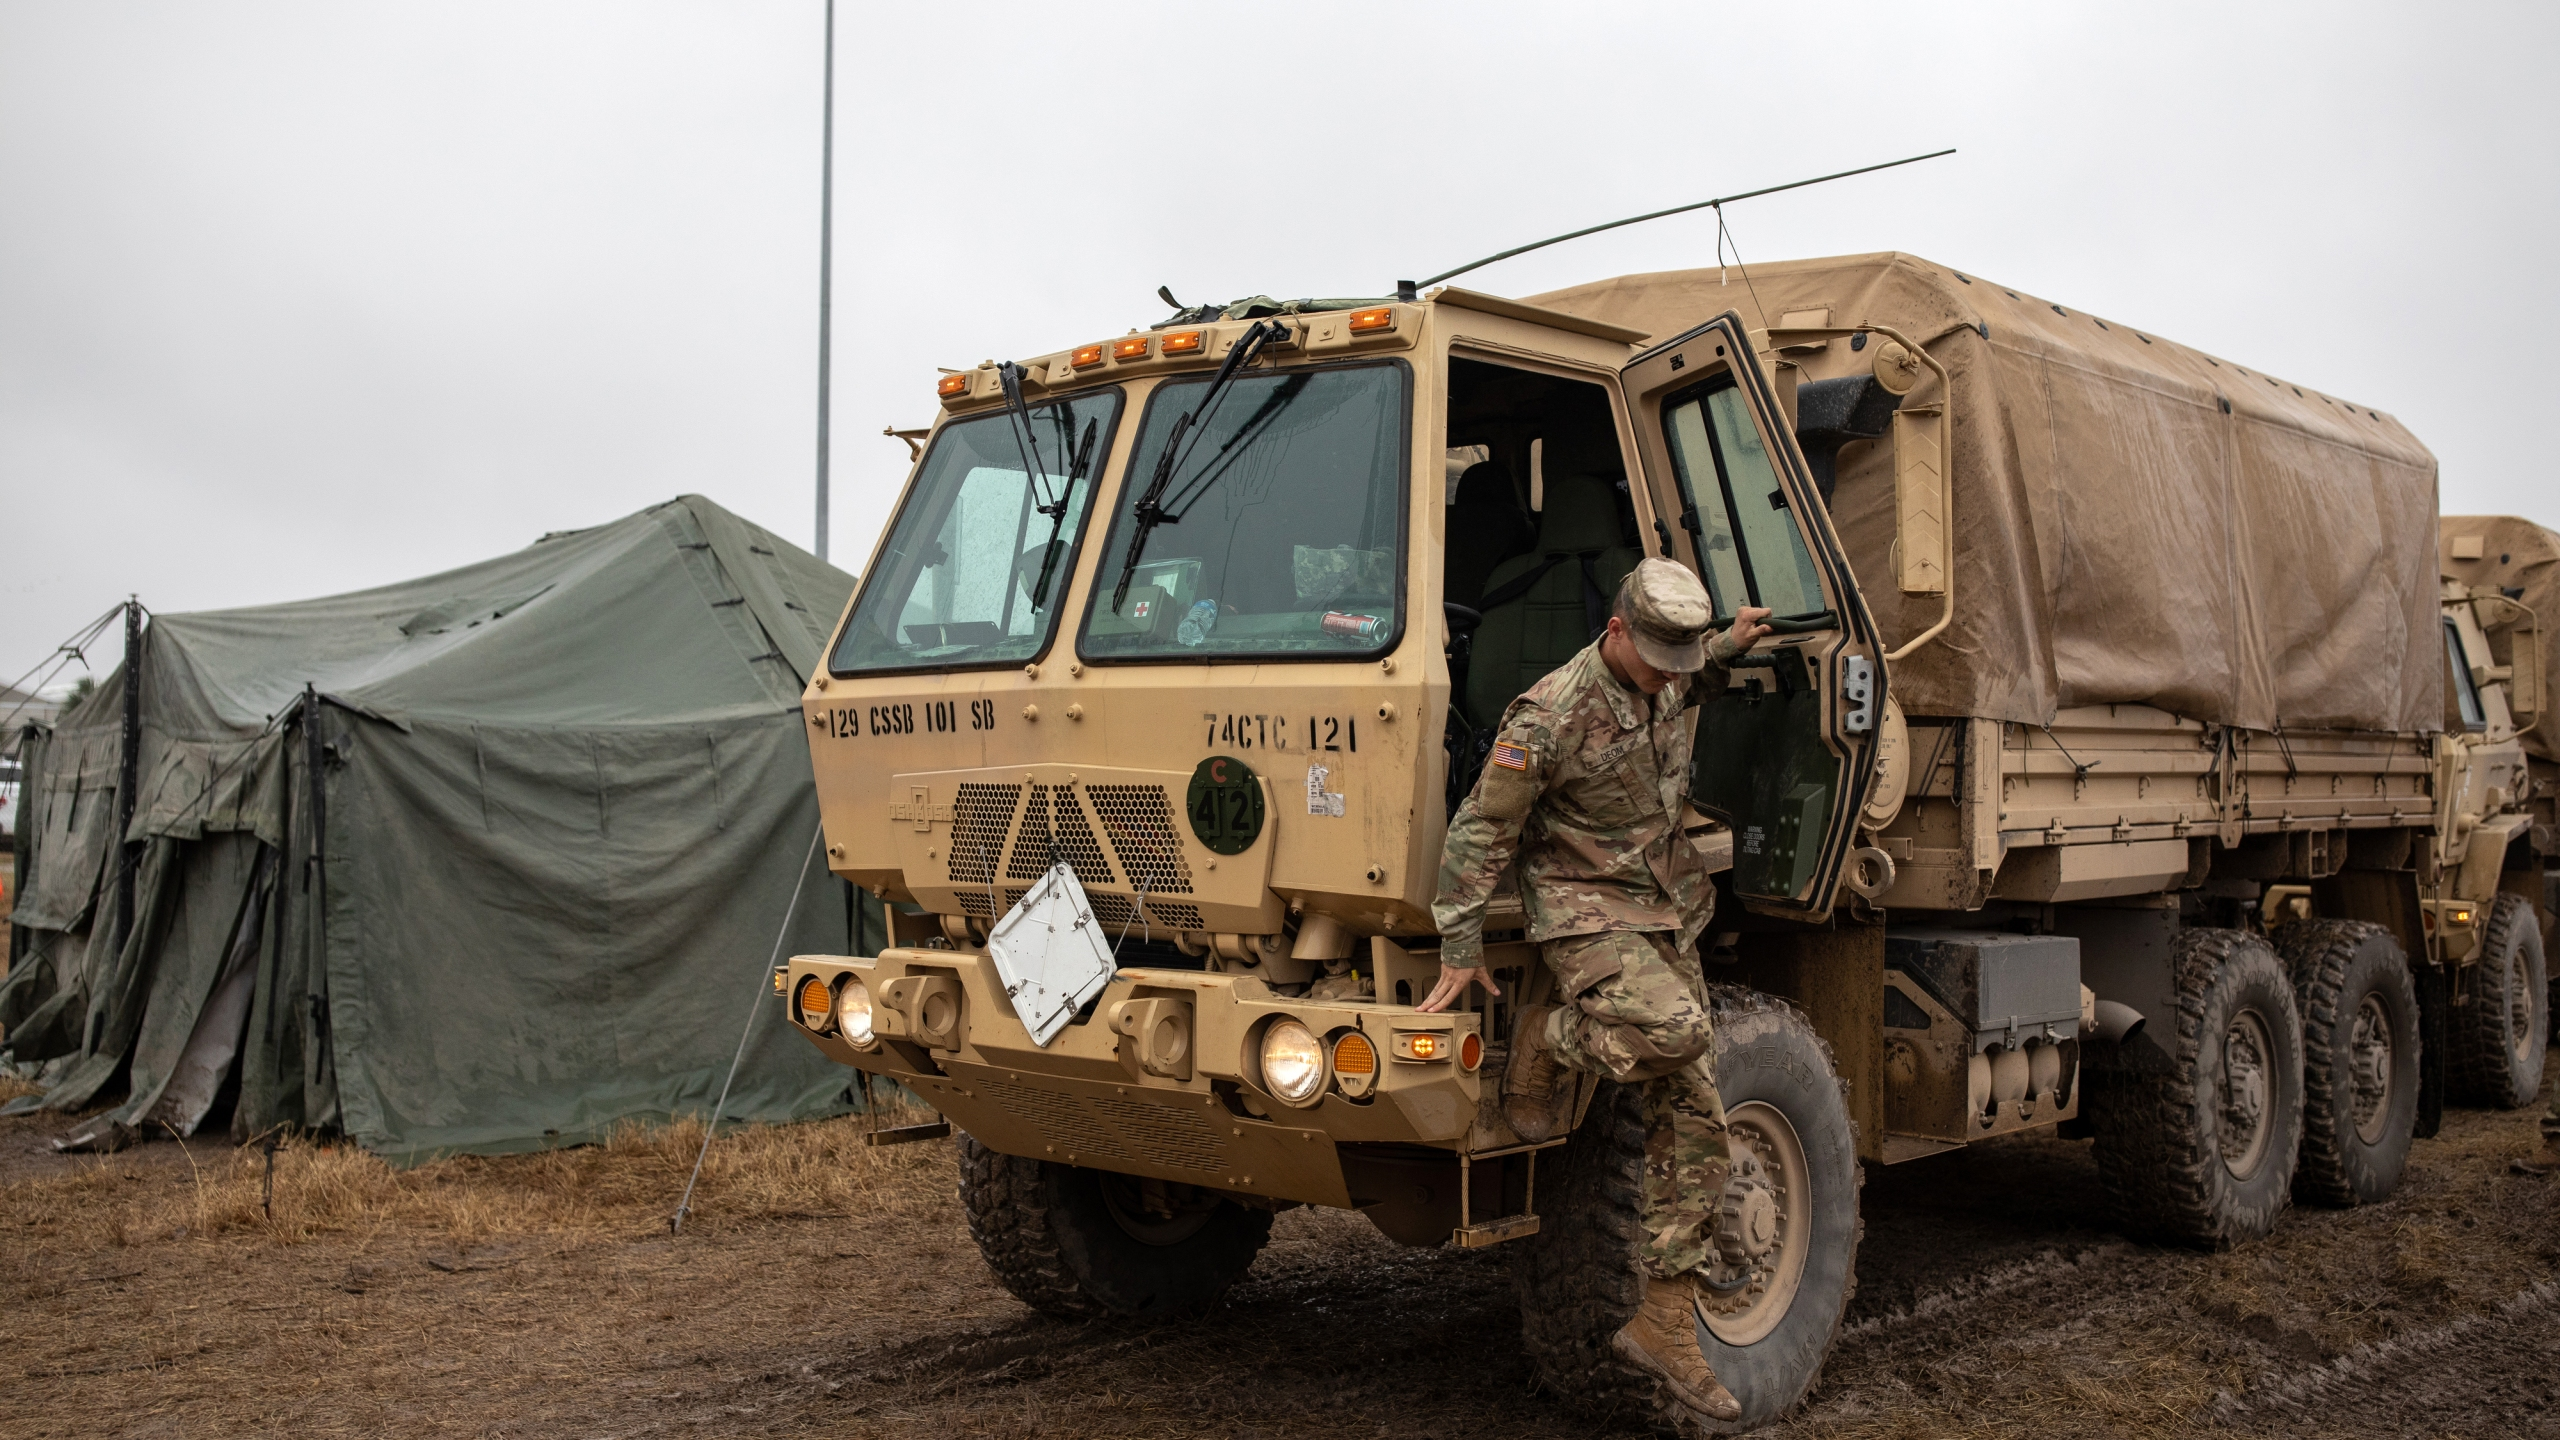 A U.S. Army soldier makes his way toward the tent where troops deployed to the U.S.-Mexico border were enjoying a Thanksgiving meal on a base in Donna, Texas on Nov. 22, 2018. (Credit: Tamir Kalifa/Getty Images)